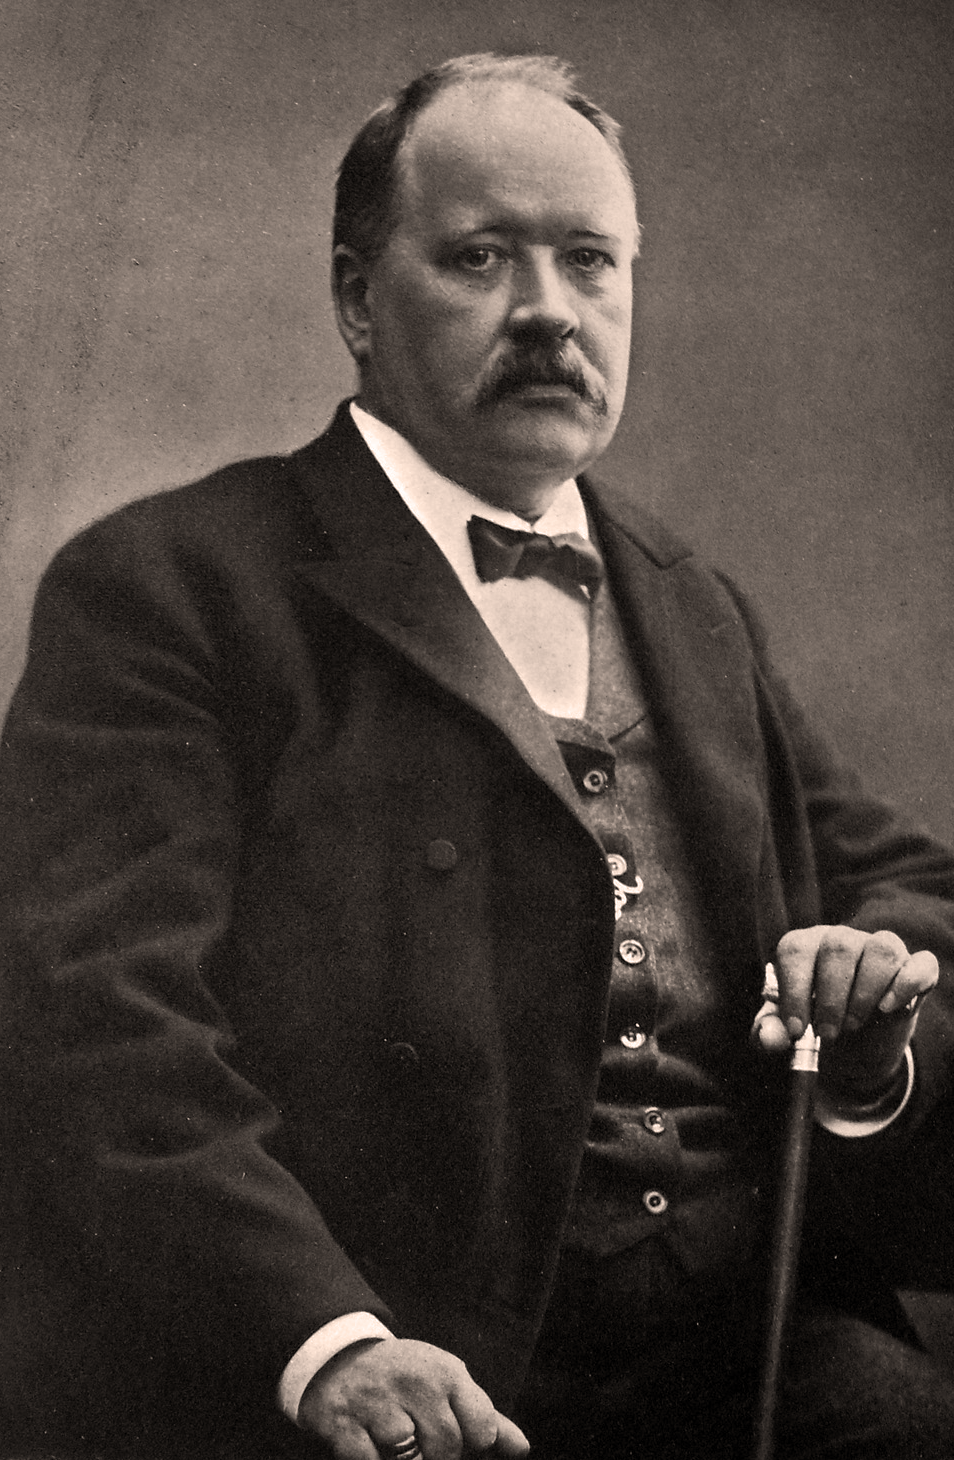 Portrait of Svante Arrhenius